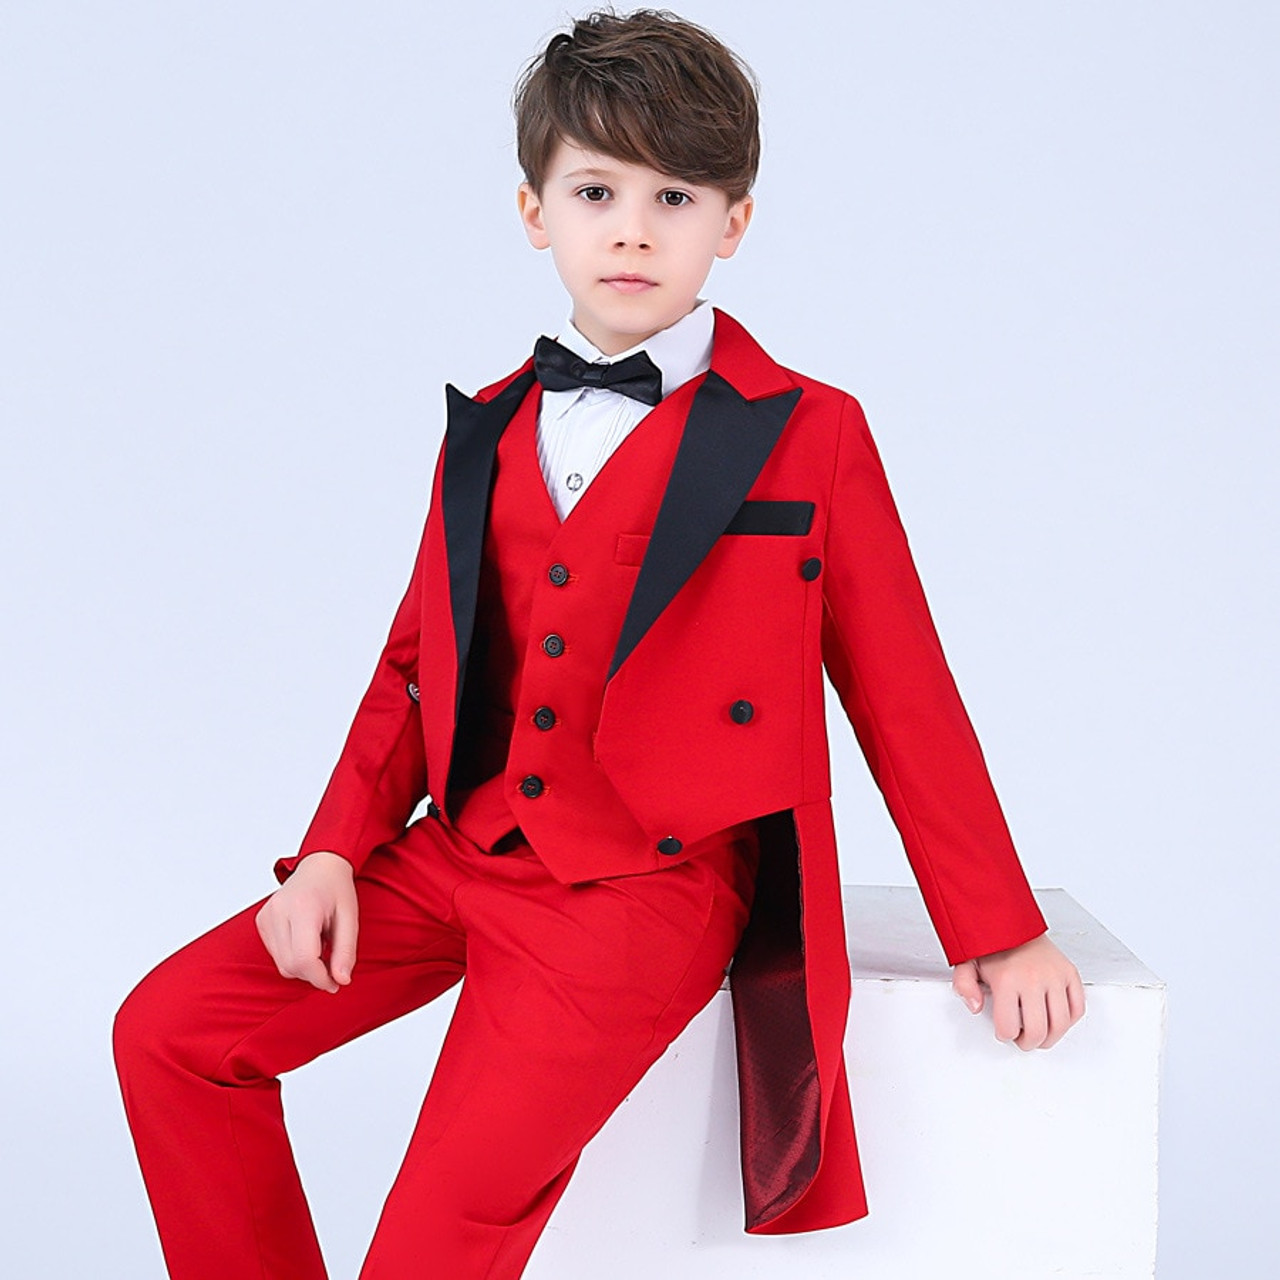 cefc0f7625a7 ... Boys Formal Dress Tuxedo Piano Performance Costume Flower Boys Birthday  Wedding Suits 5pcs Jacket + Shirt ...